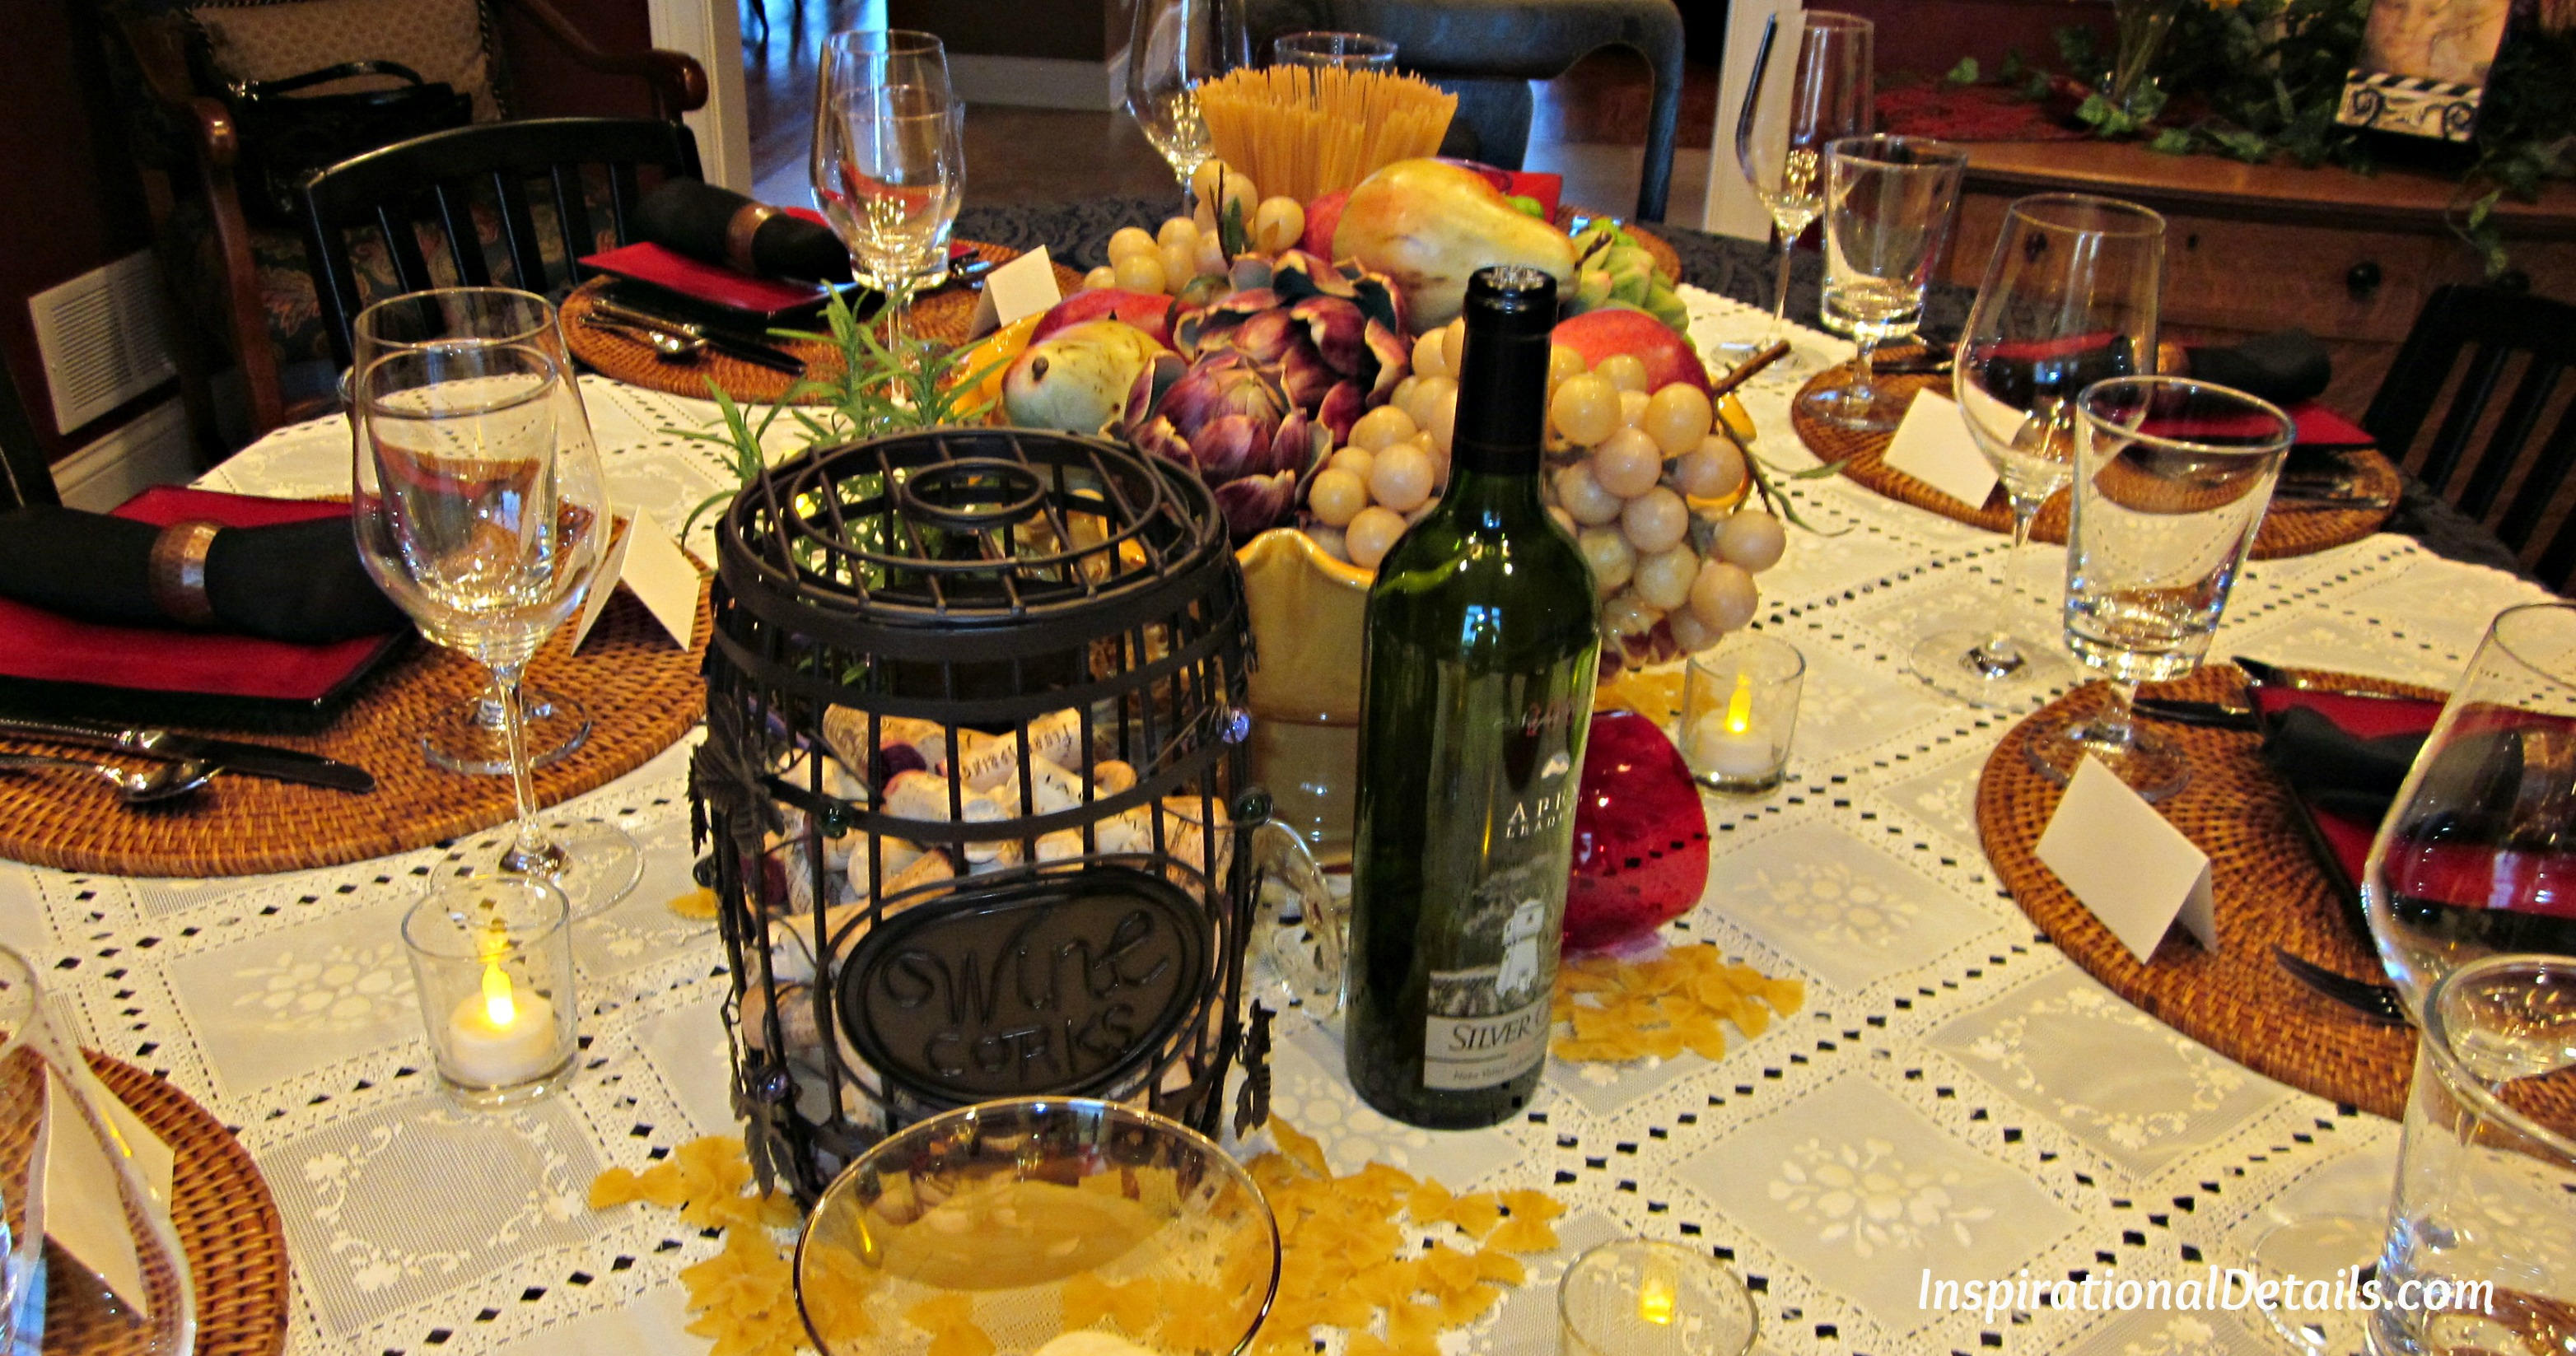 browse italian dinner tablescapeinspirational details